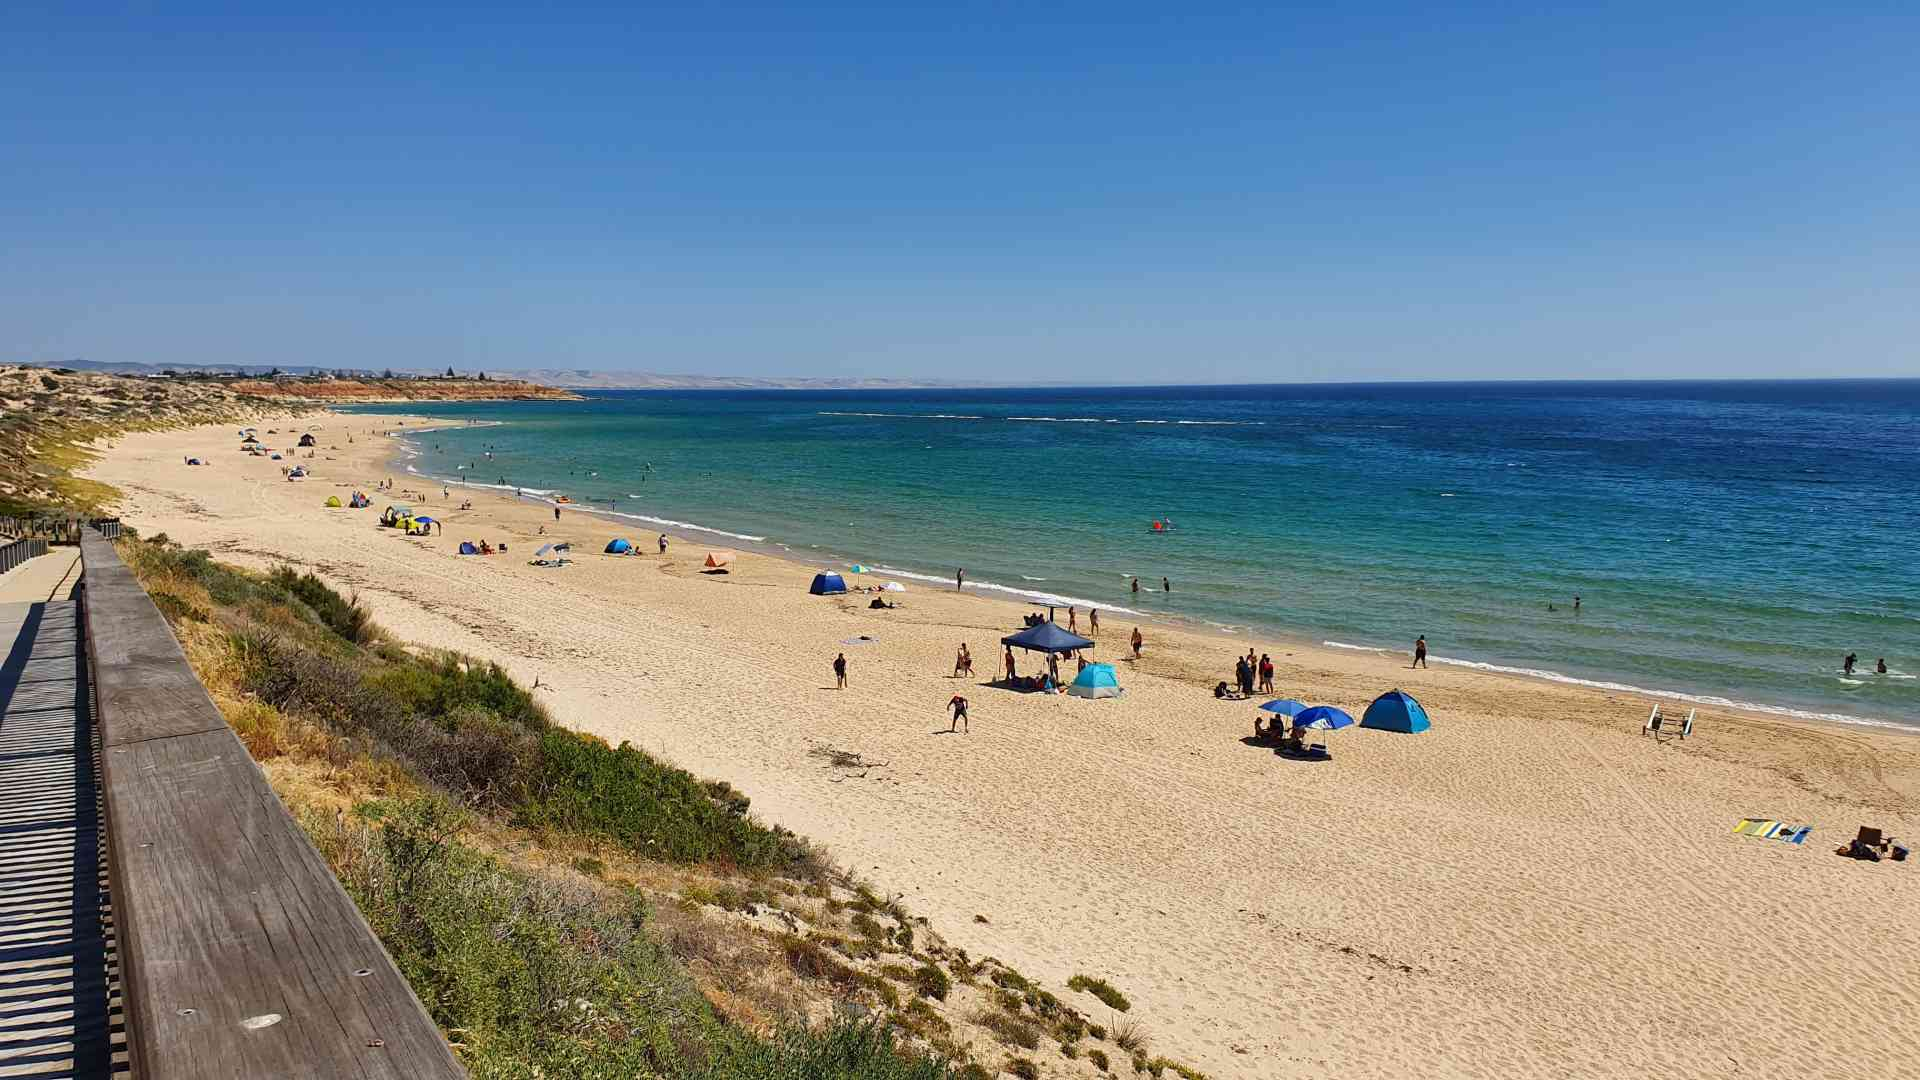 Port Noarlunga Beach by Dennis Bunnik